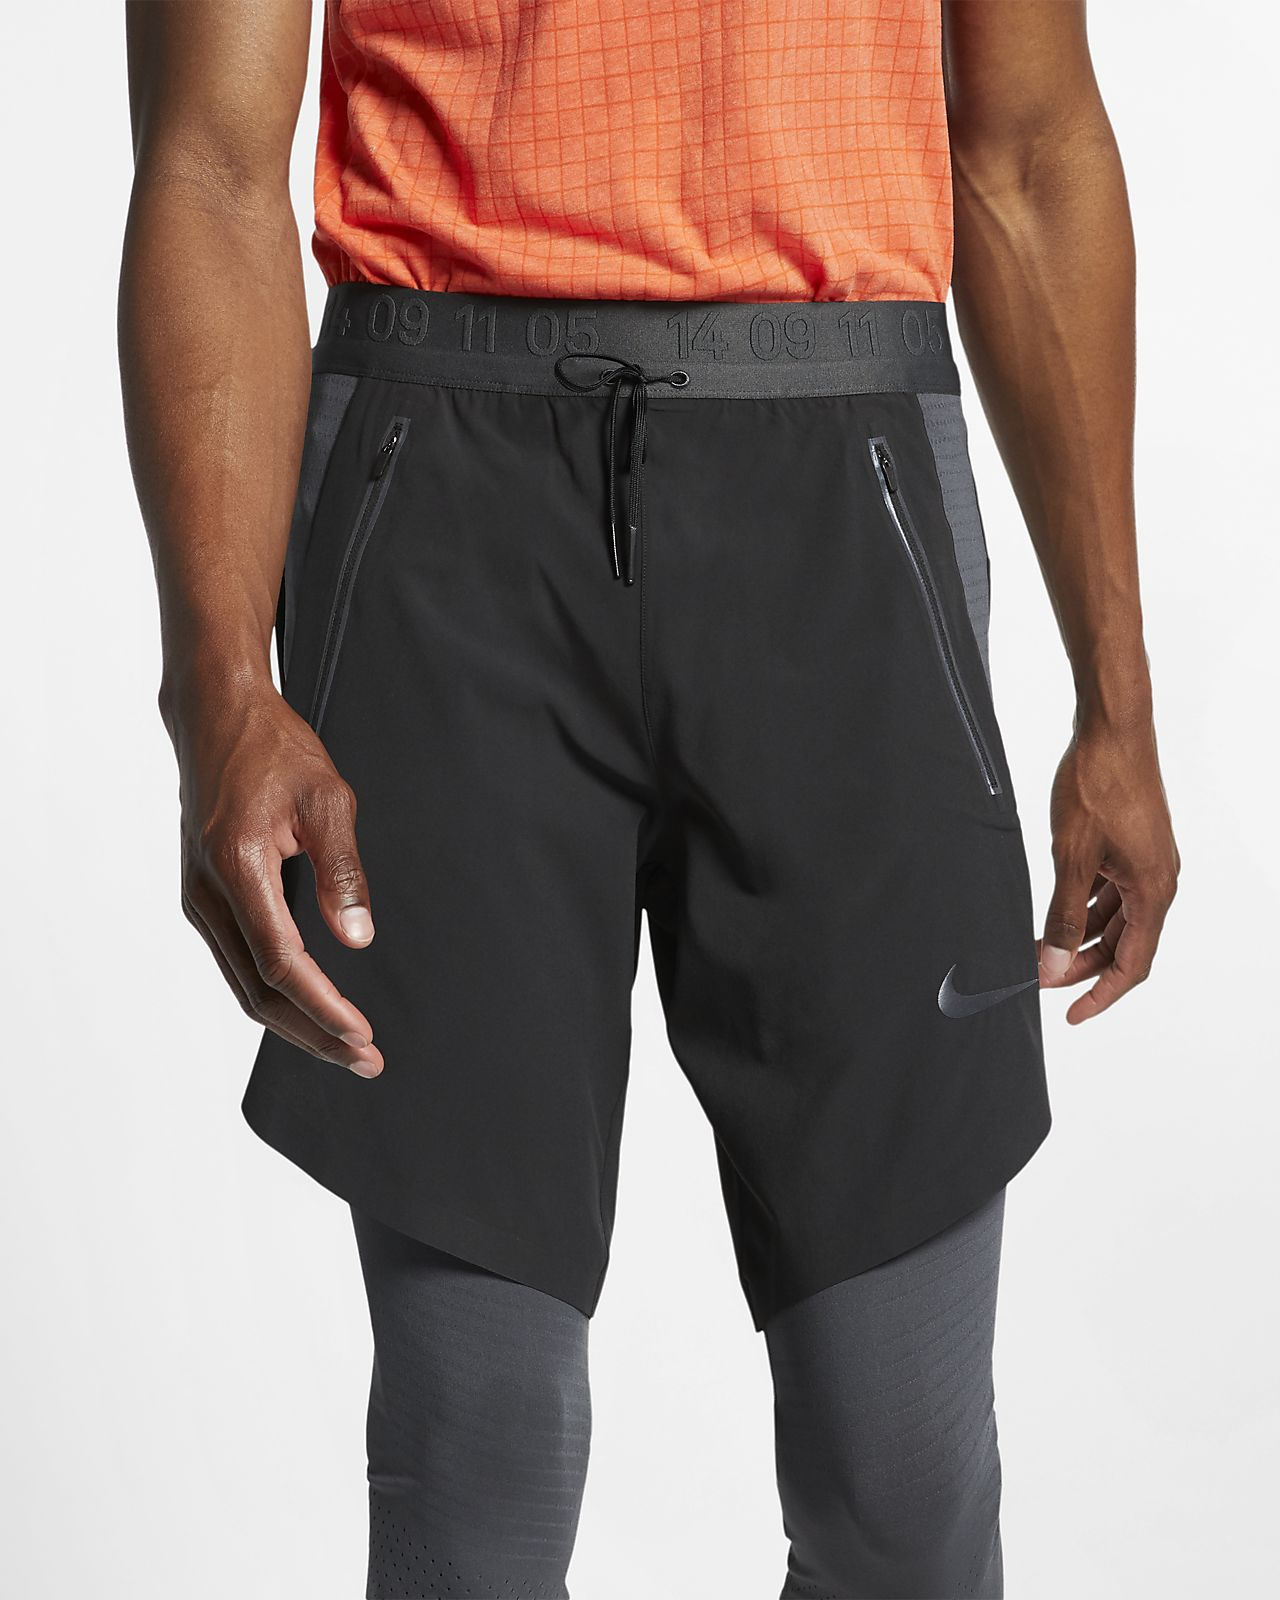 Nike Tech Pack Men's 3/4 Running Trousers